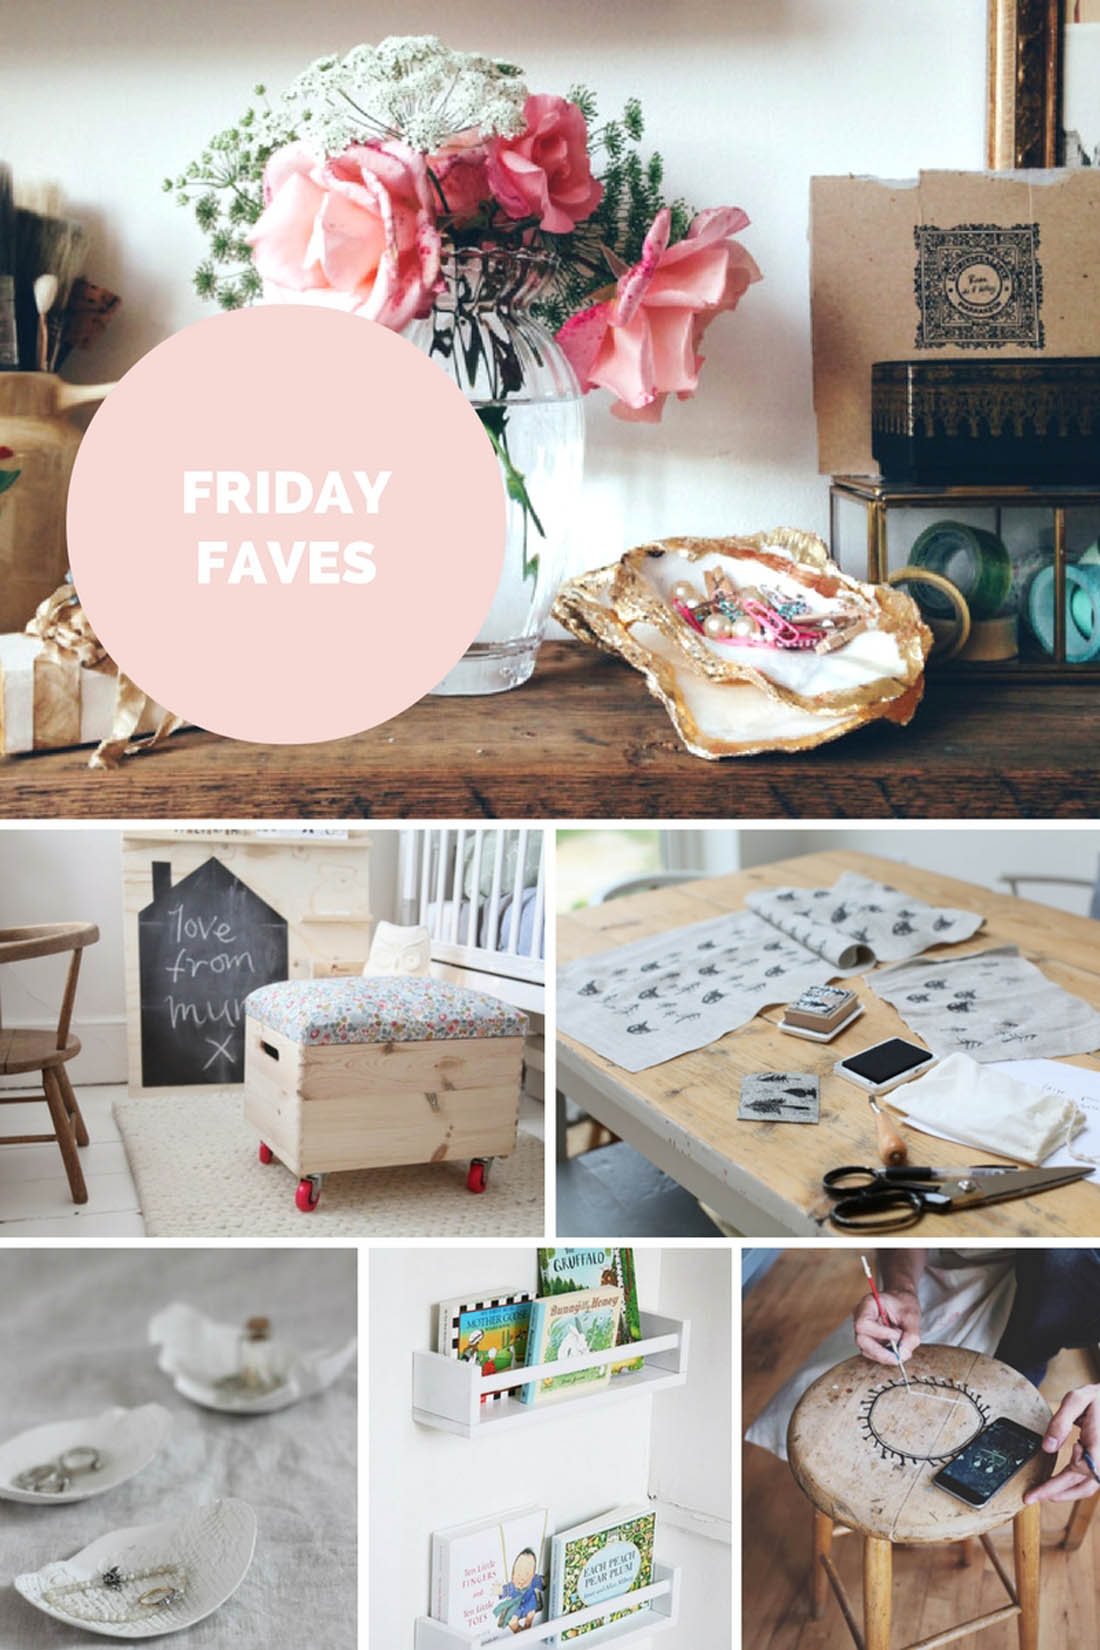 Six DIY craft projects to try including hand printing fabric, air dry clay bowls, using Ikea spice racks as book shelves, waiting furniture with folk designs and making a toy box | Apartment Apothecary